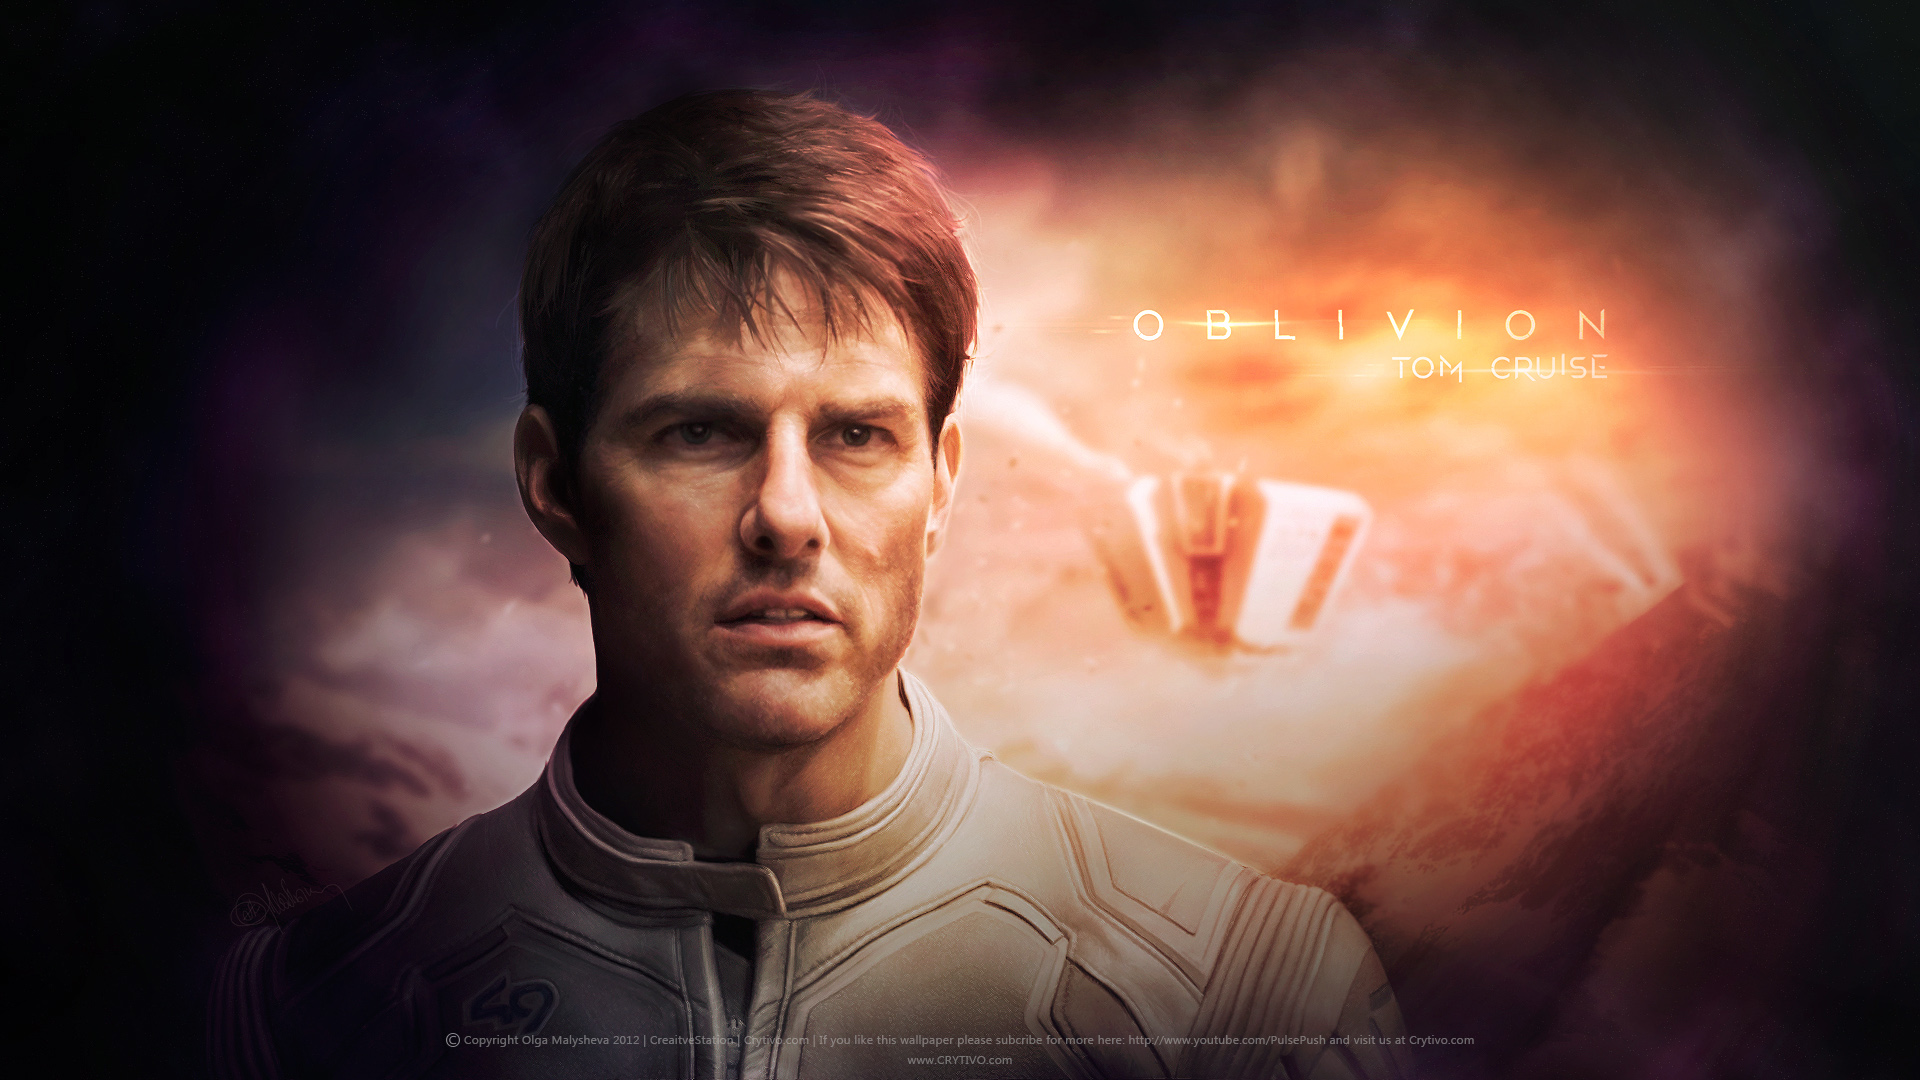 Tom cruise in movie photo wallpaper Gallery 1920x1080